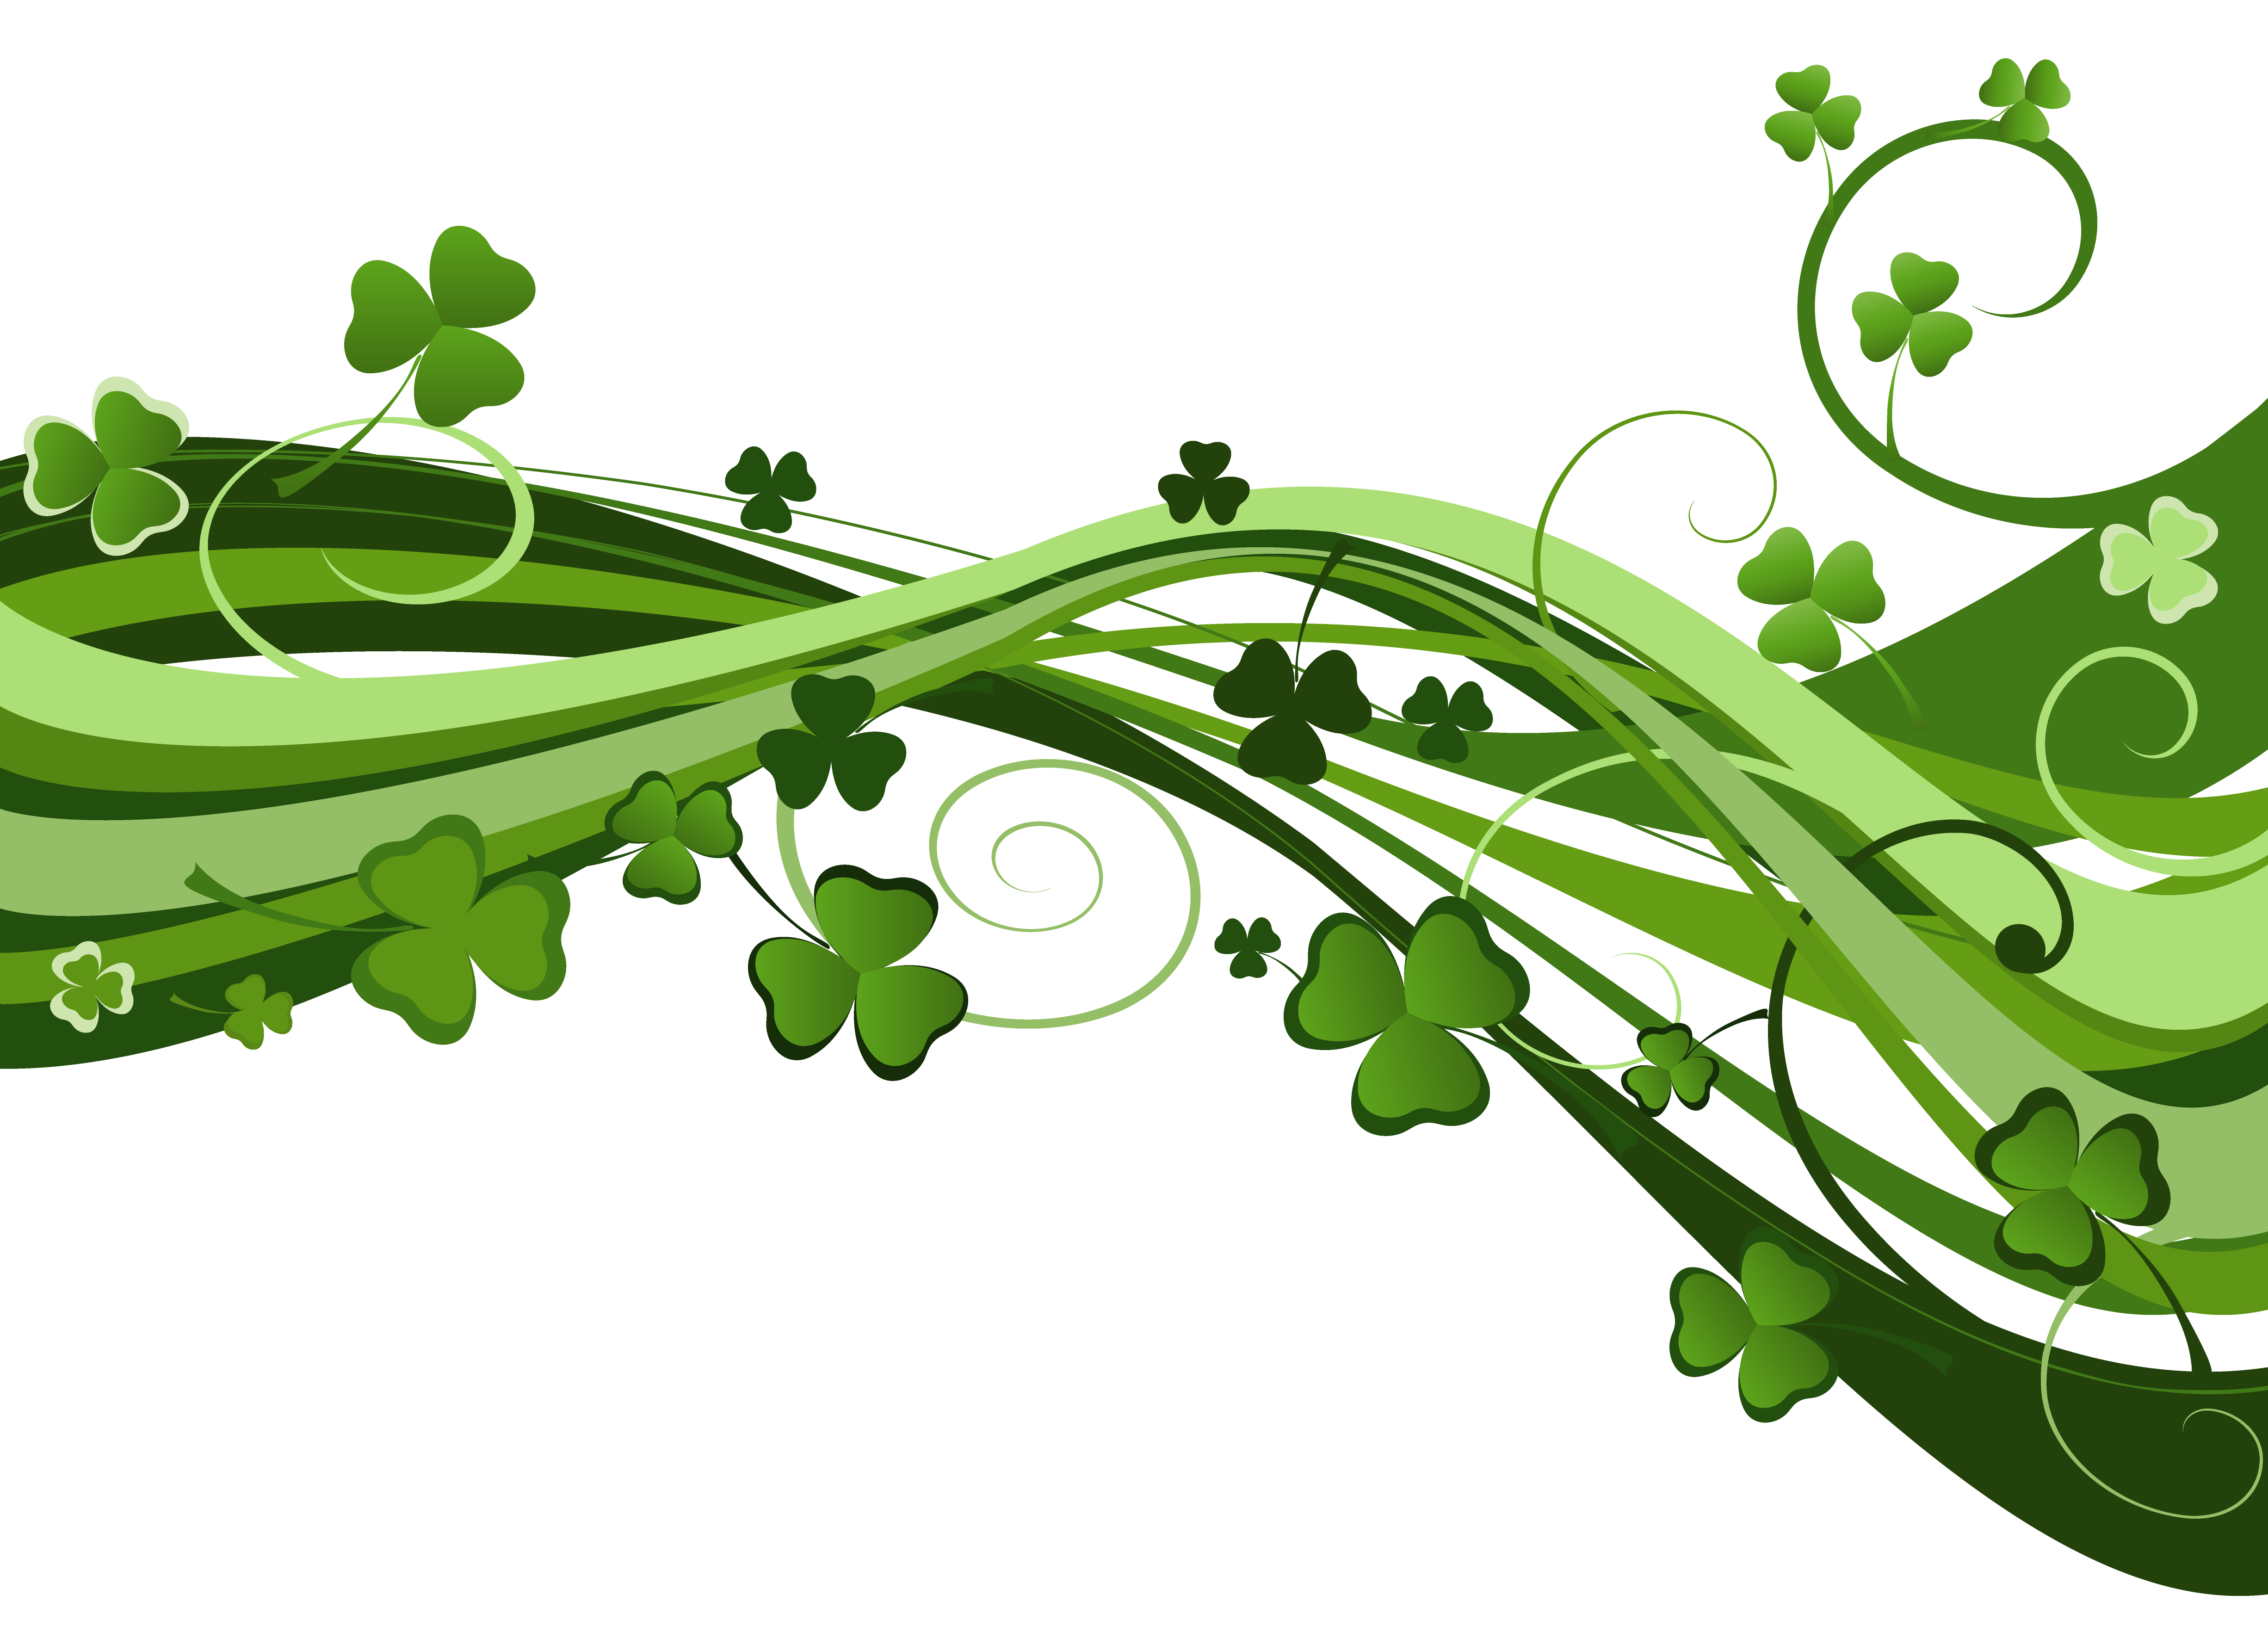 Clover clipart border. Download saint patricks day